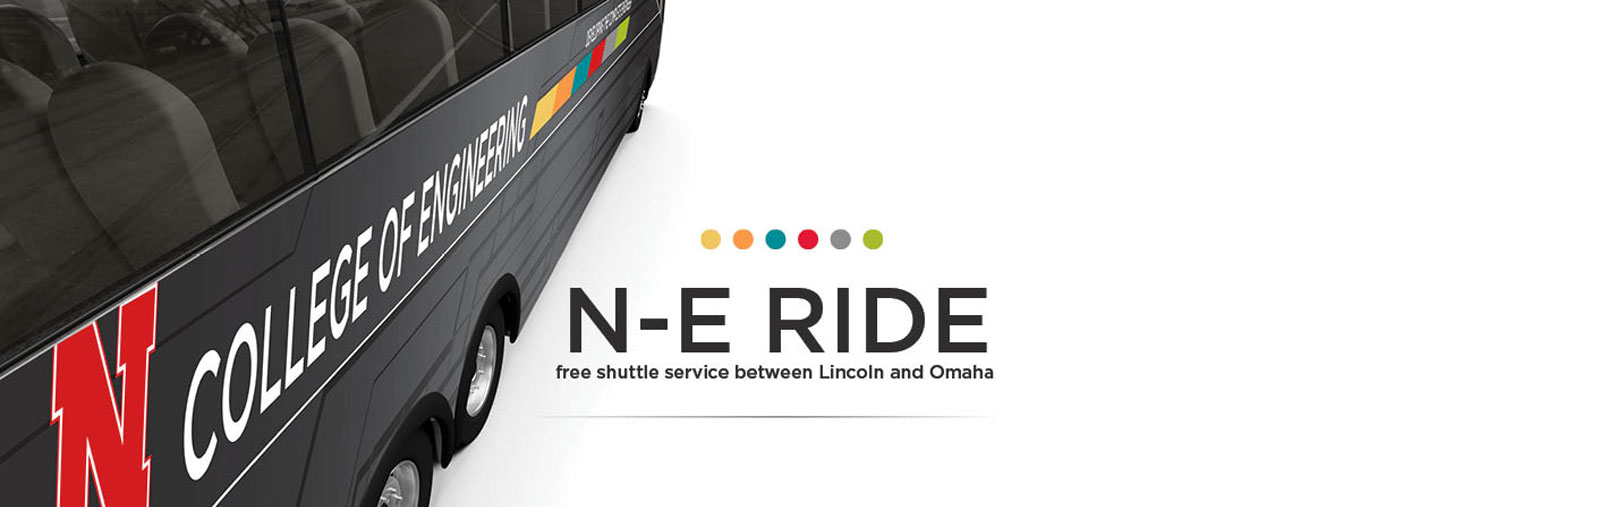 N-E RIDE free shuttle service for engineering and NU